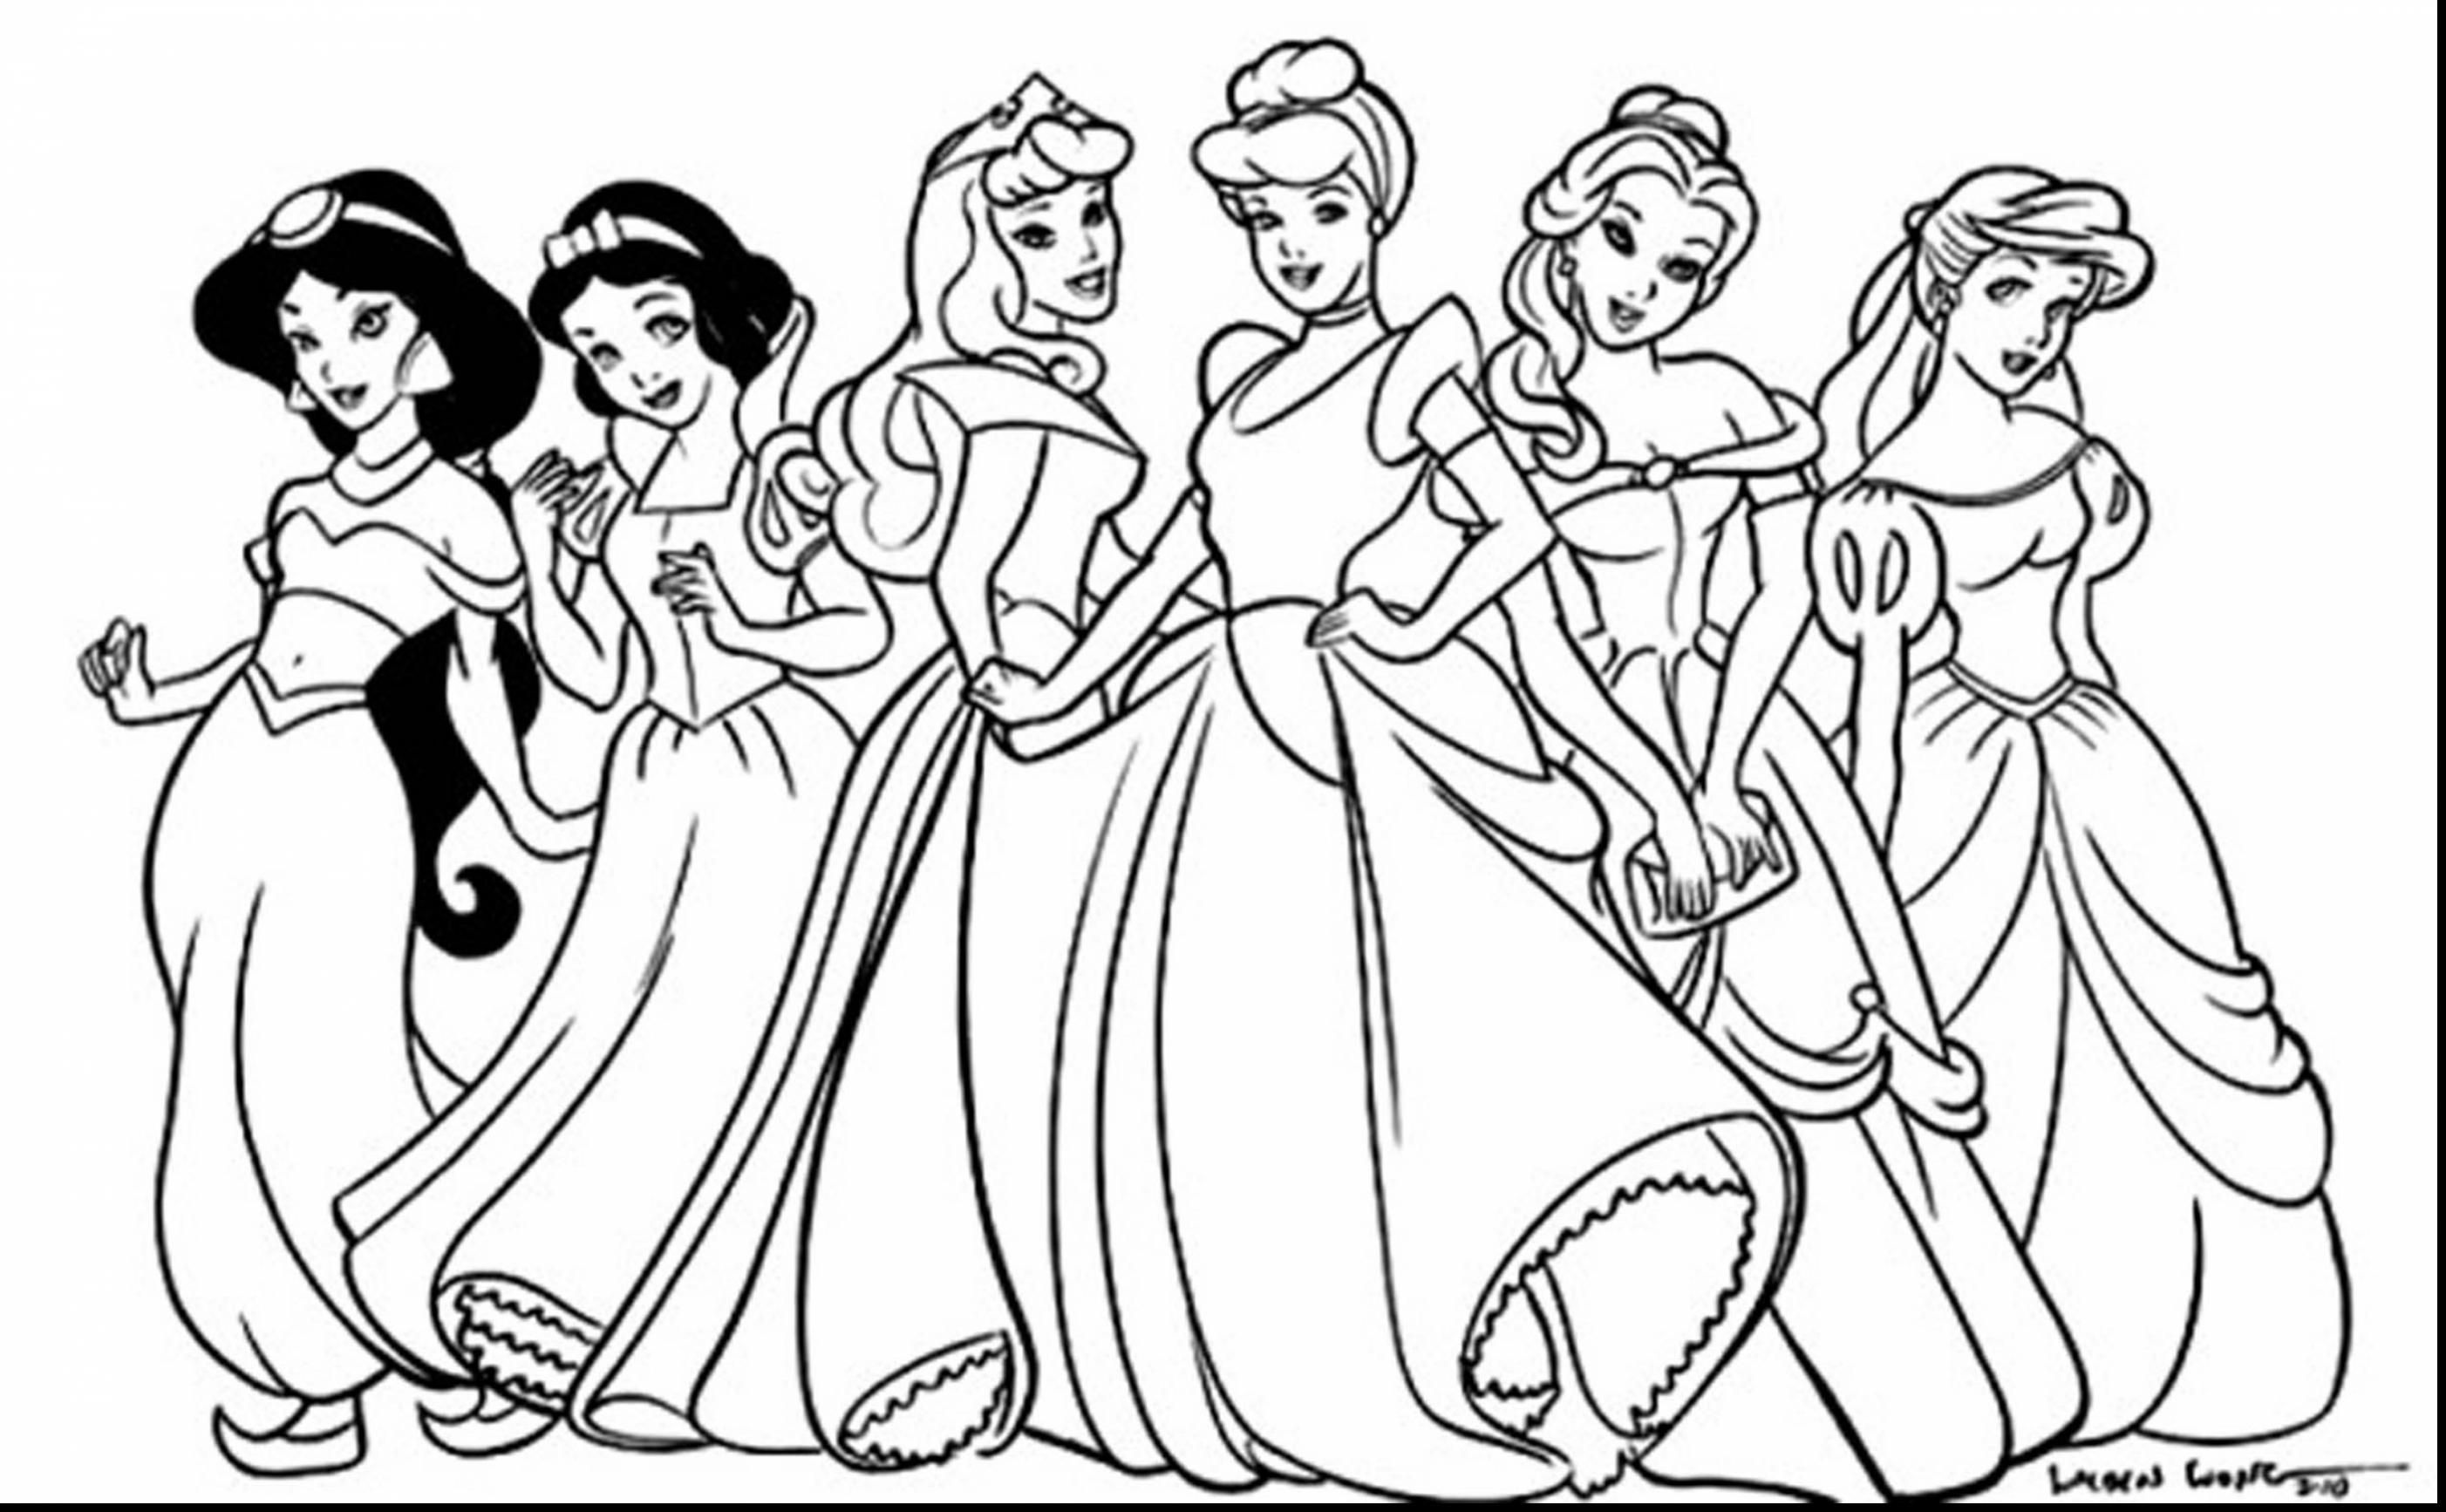 The Best Free Maleficent Coloring Page Images Download From 102